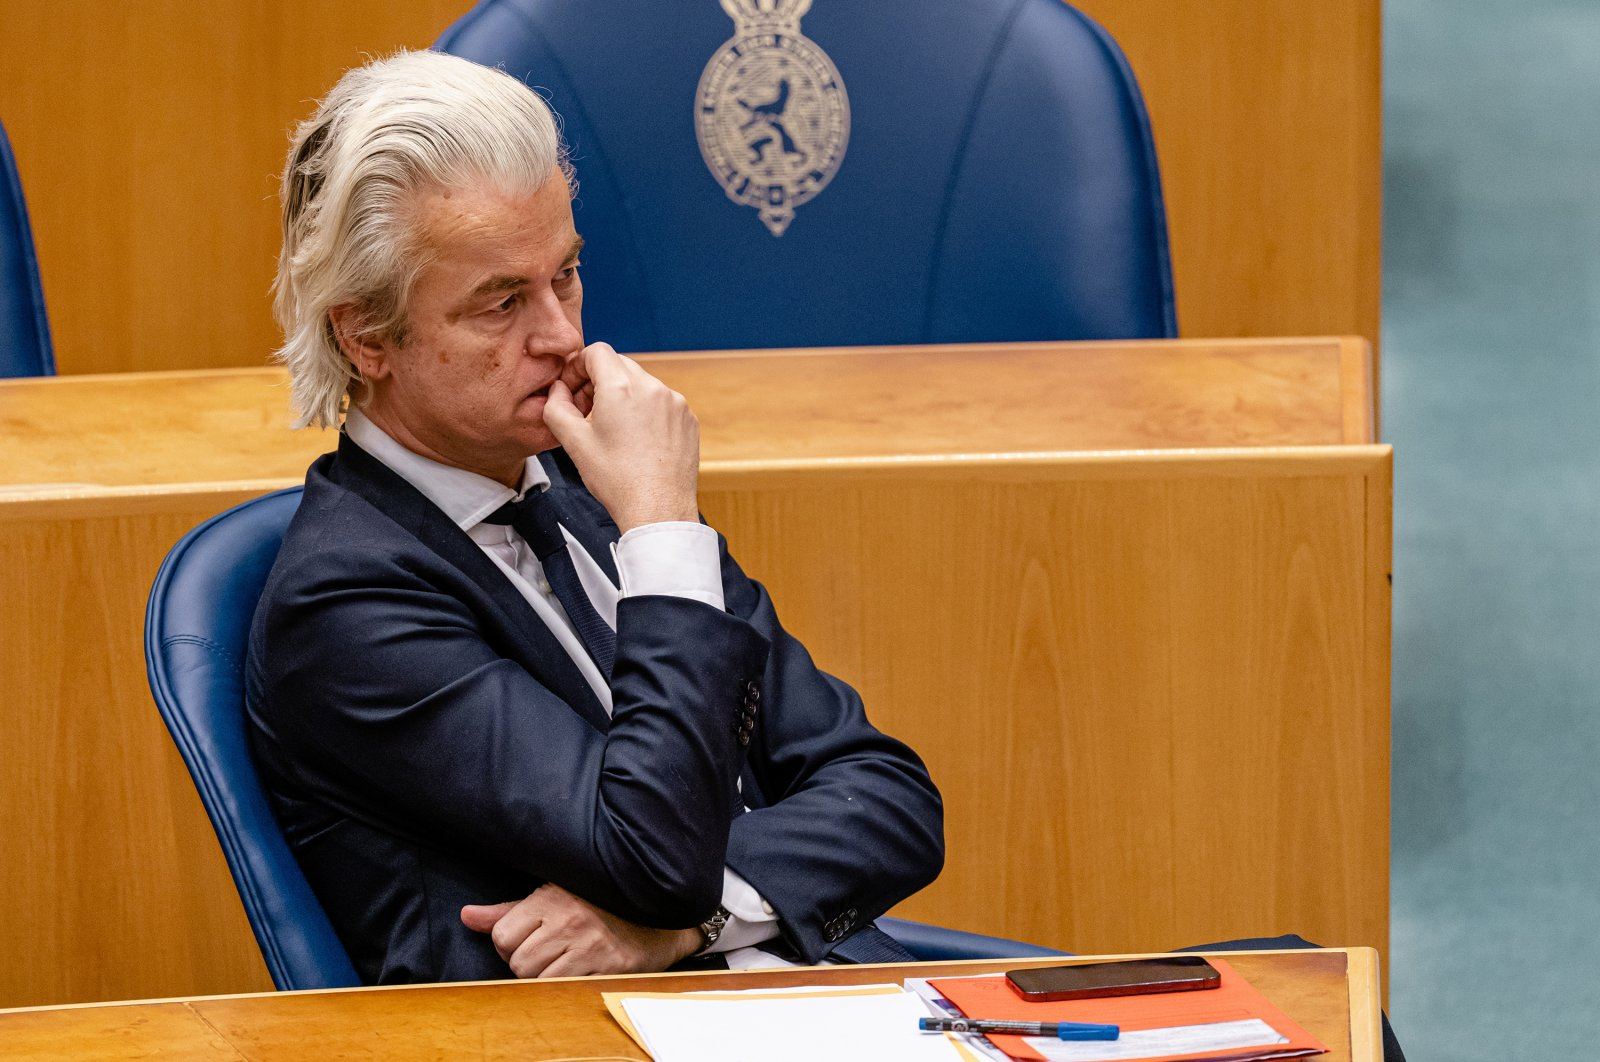 Far-right Dutch politician Geert Wilders during a plenary debate in The Hague, the Netherlands, Jan. 19, 2021. (Photo by Getty Images)